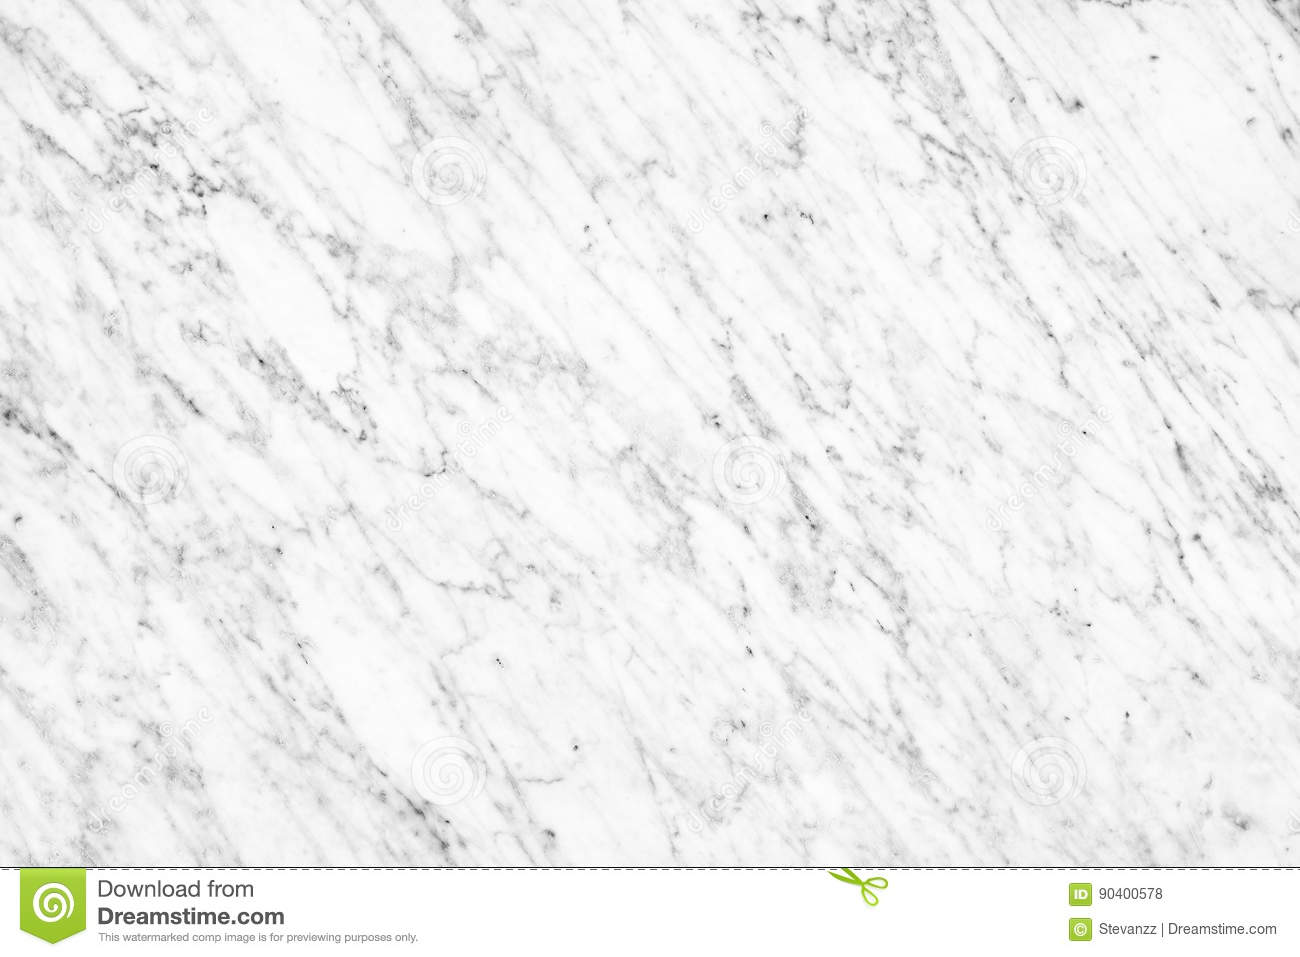 white marble countertops texture. White Carrara Marble Natural Light Surface For Bathroom Or Kitch Stock Photo - Image Of Interior, Background: 90400578 Countertops Texture